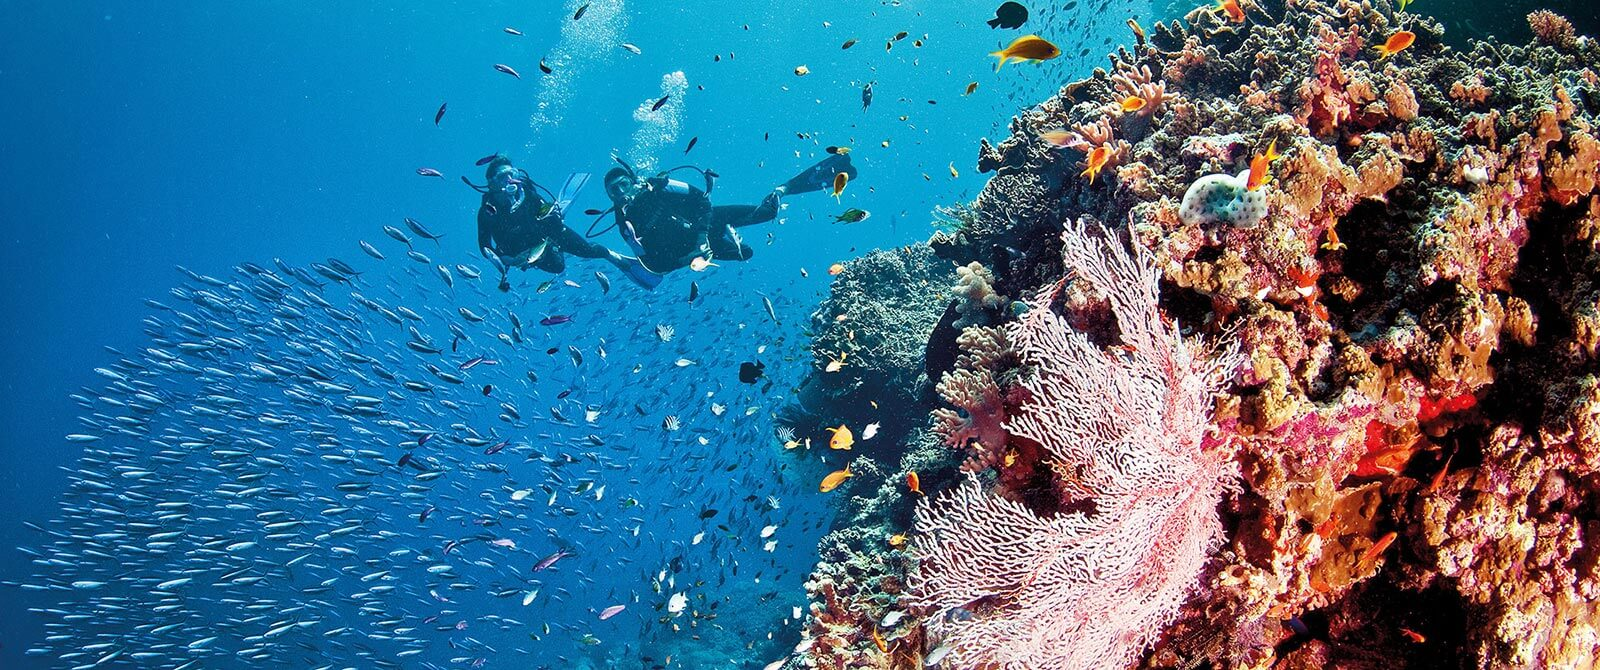 Diving the Great Barrier Reef - Book Your Australia Vacation - Australia Travel Agency